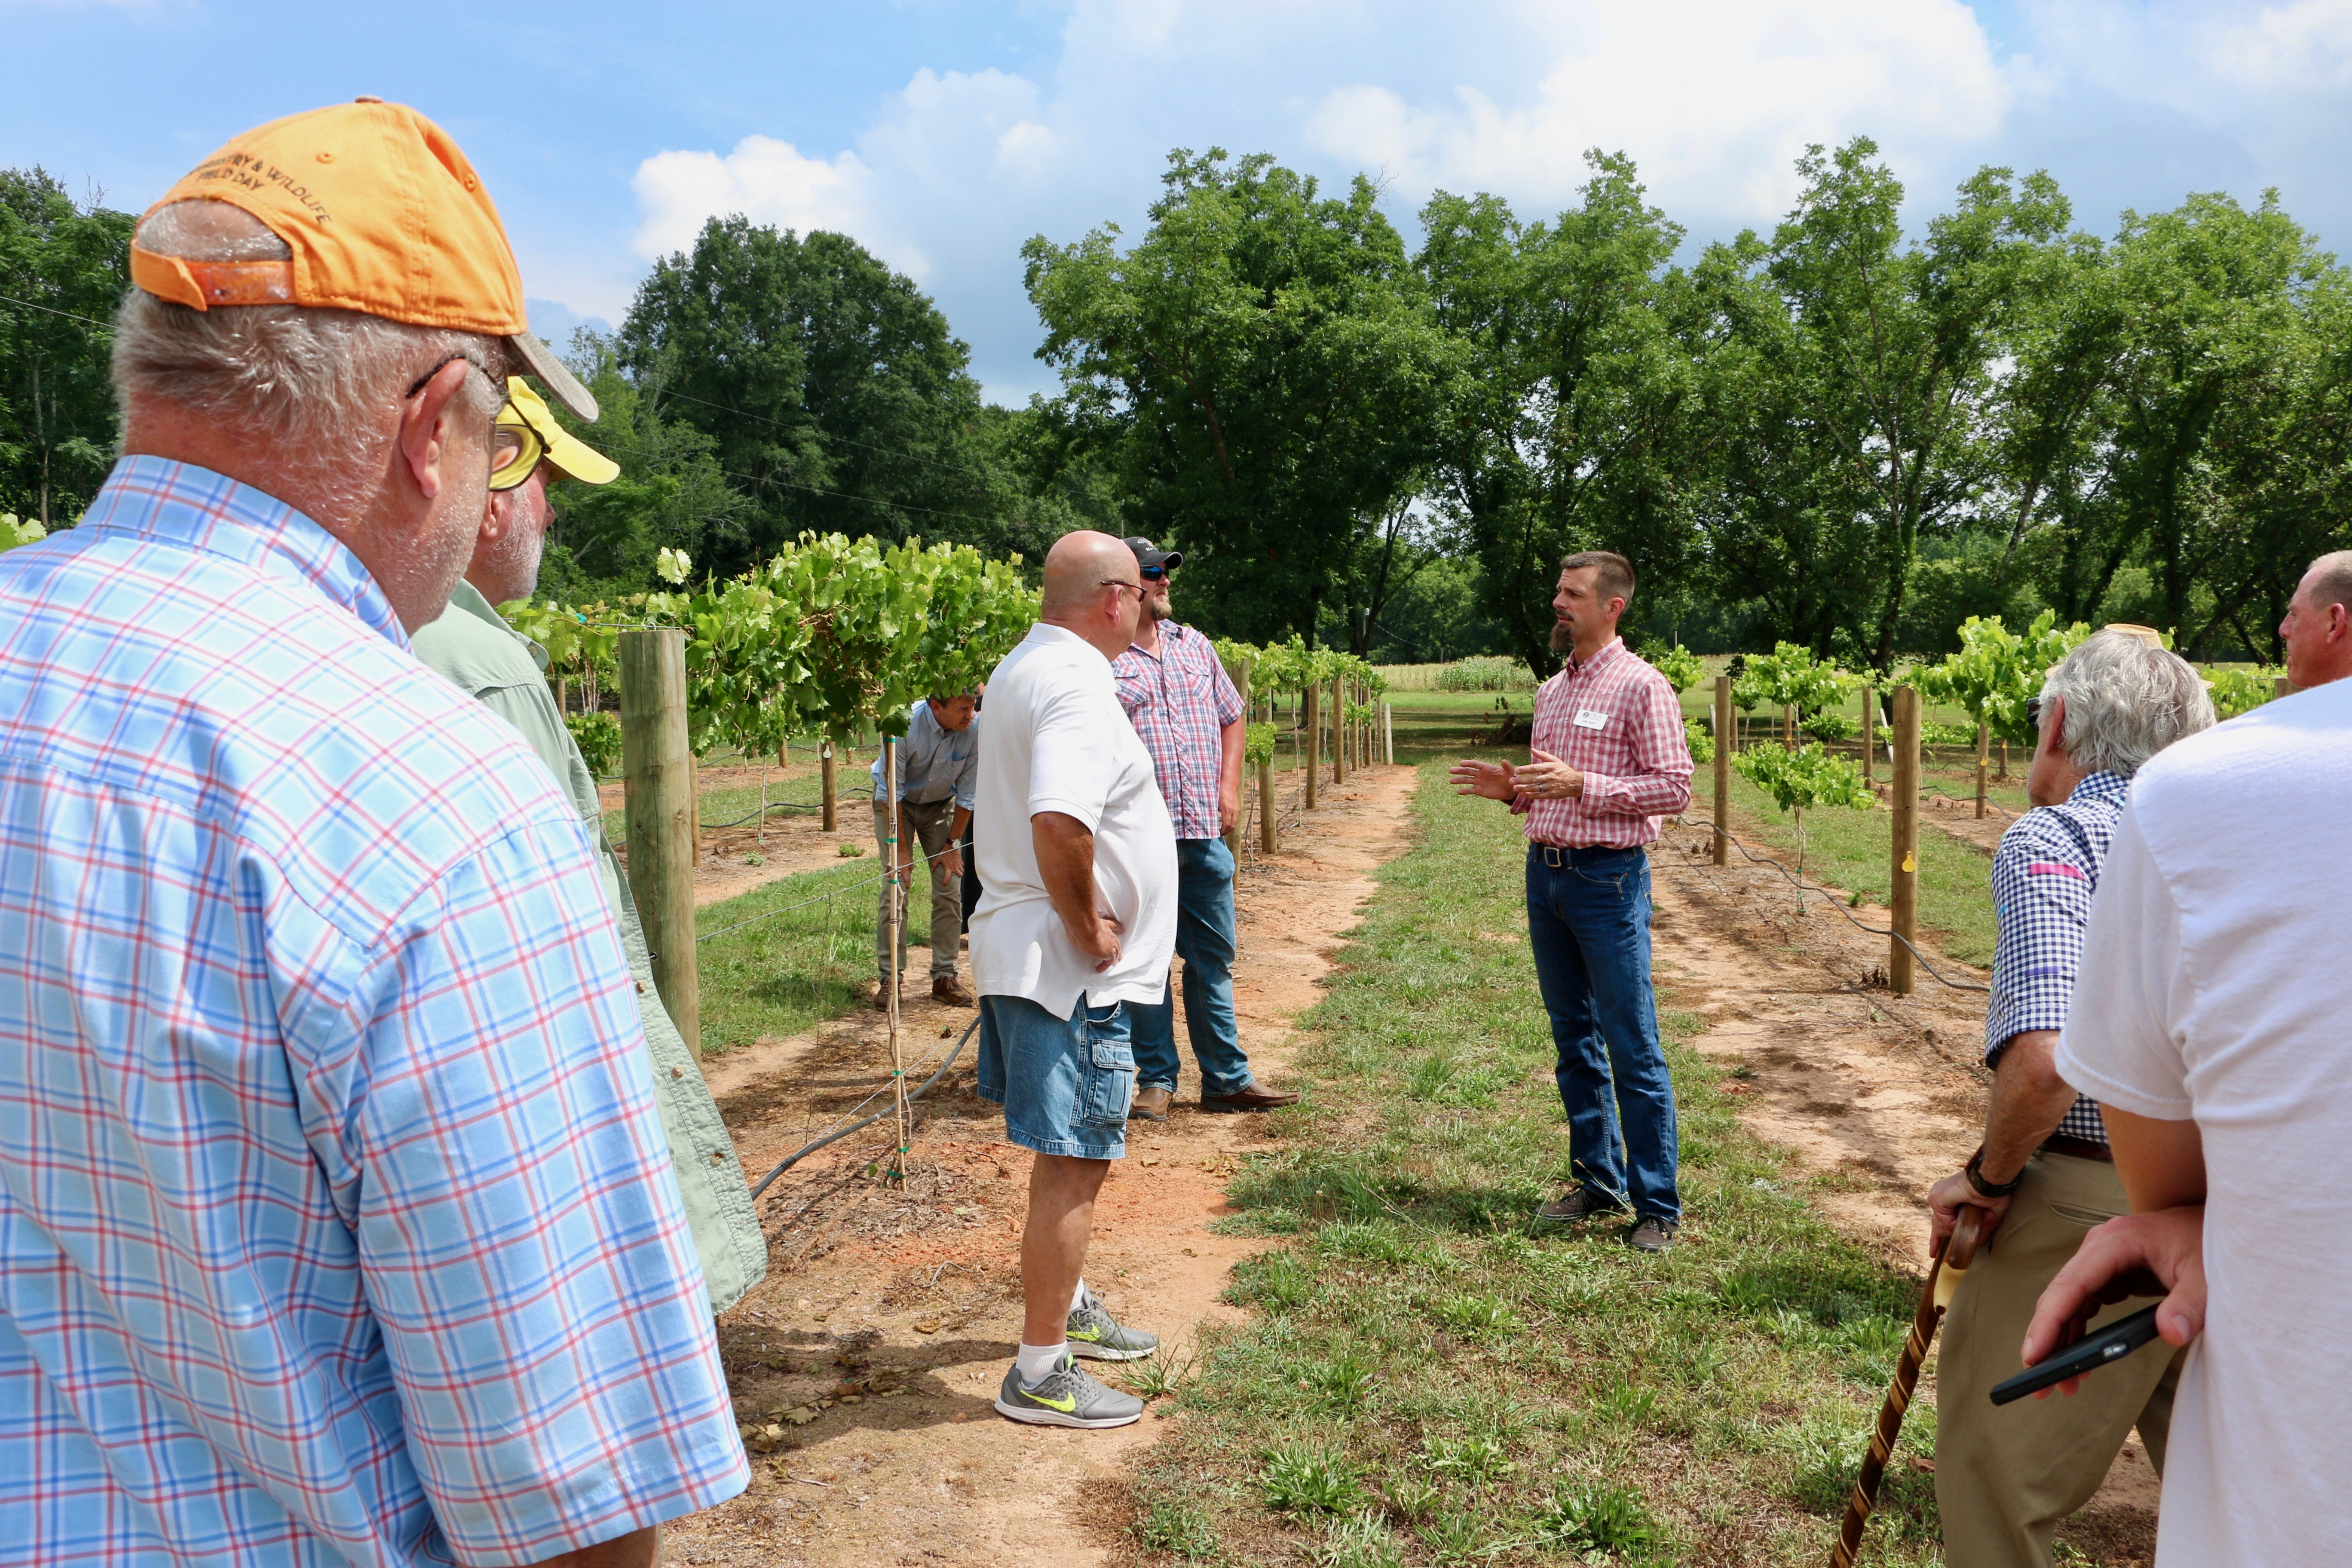 University of Georgia Cooperative Extension viticulture specialist Cain Hickey leads a tour of his muscadine vineyard outside of Athens.